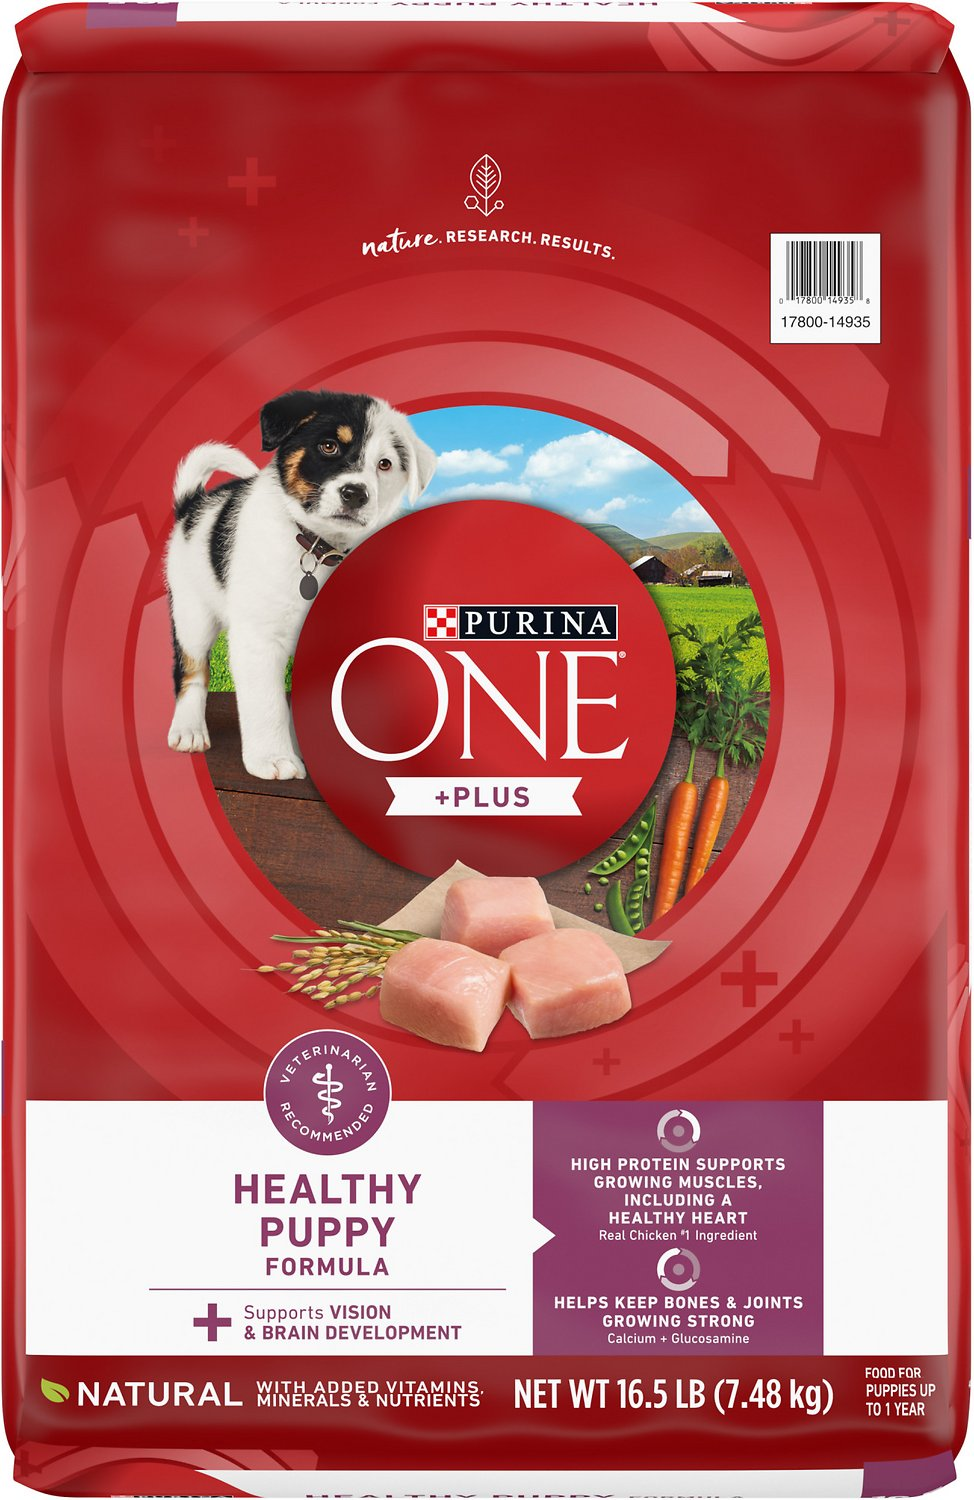 Puppies: Start puppies on moistened Purina ONE as early as they will nibble at solid foods, generally weeks of age. Allow your puppy to eat at will until fully weaned ( weeks). After weaning, feed pups (to six months of age) all of the moistened or dry Purina ONE they will consume at /5().